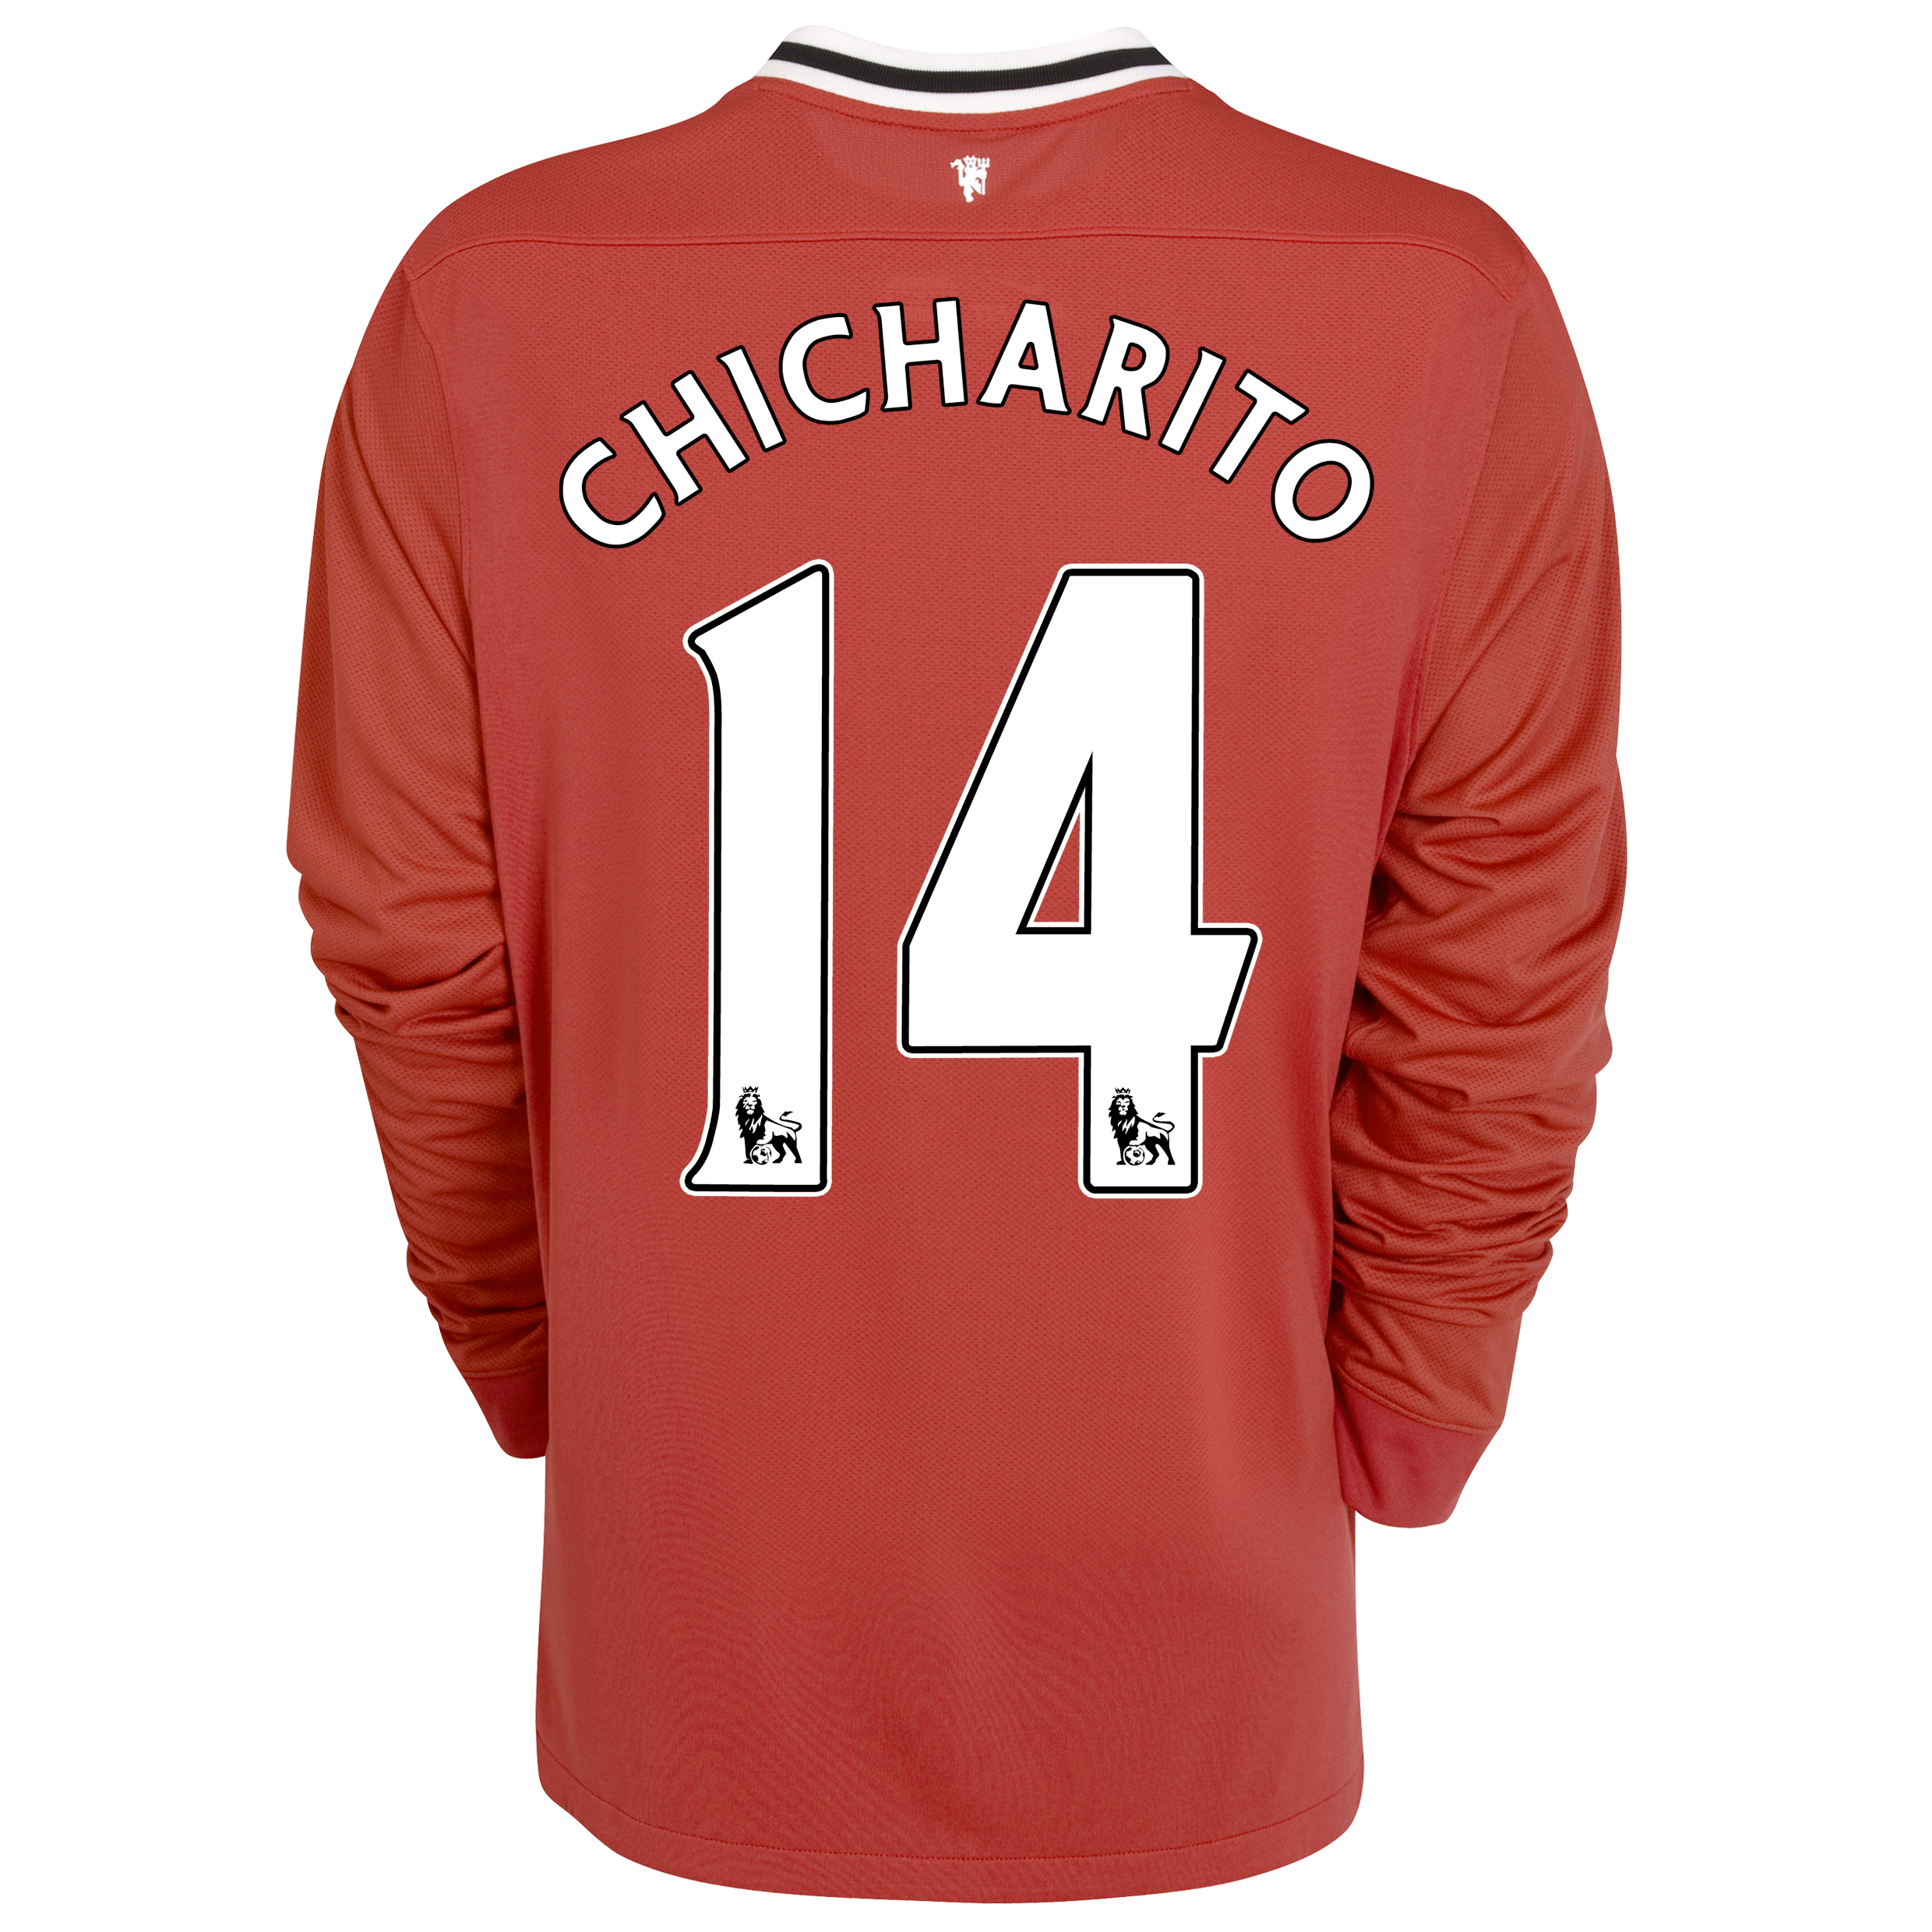 Manchester United Home Shirt 2011/12 - Long Sleeved - Kids with Chicharito 14 printing